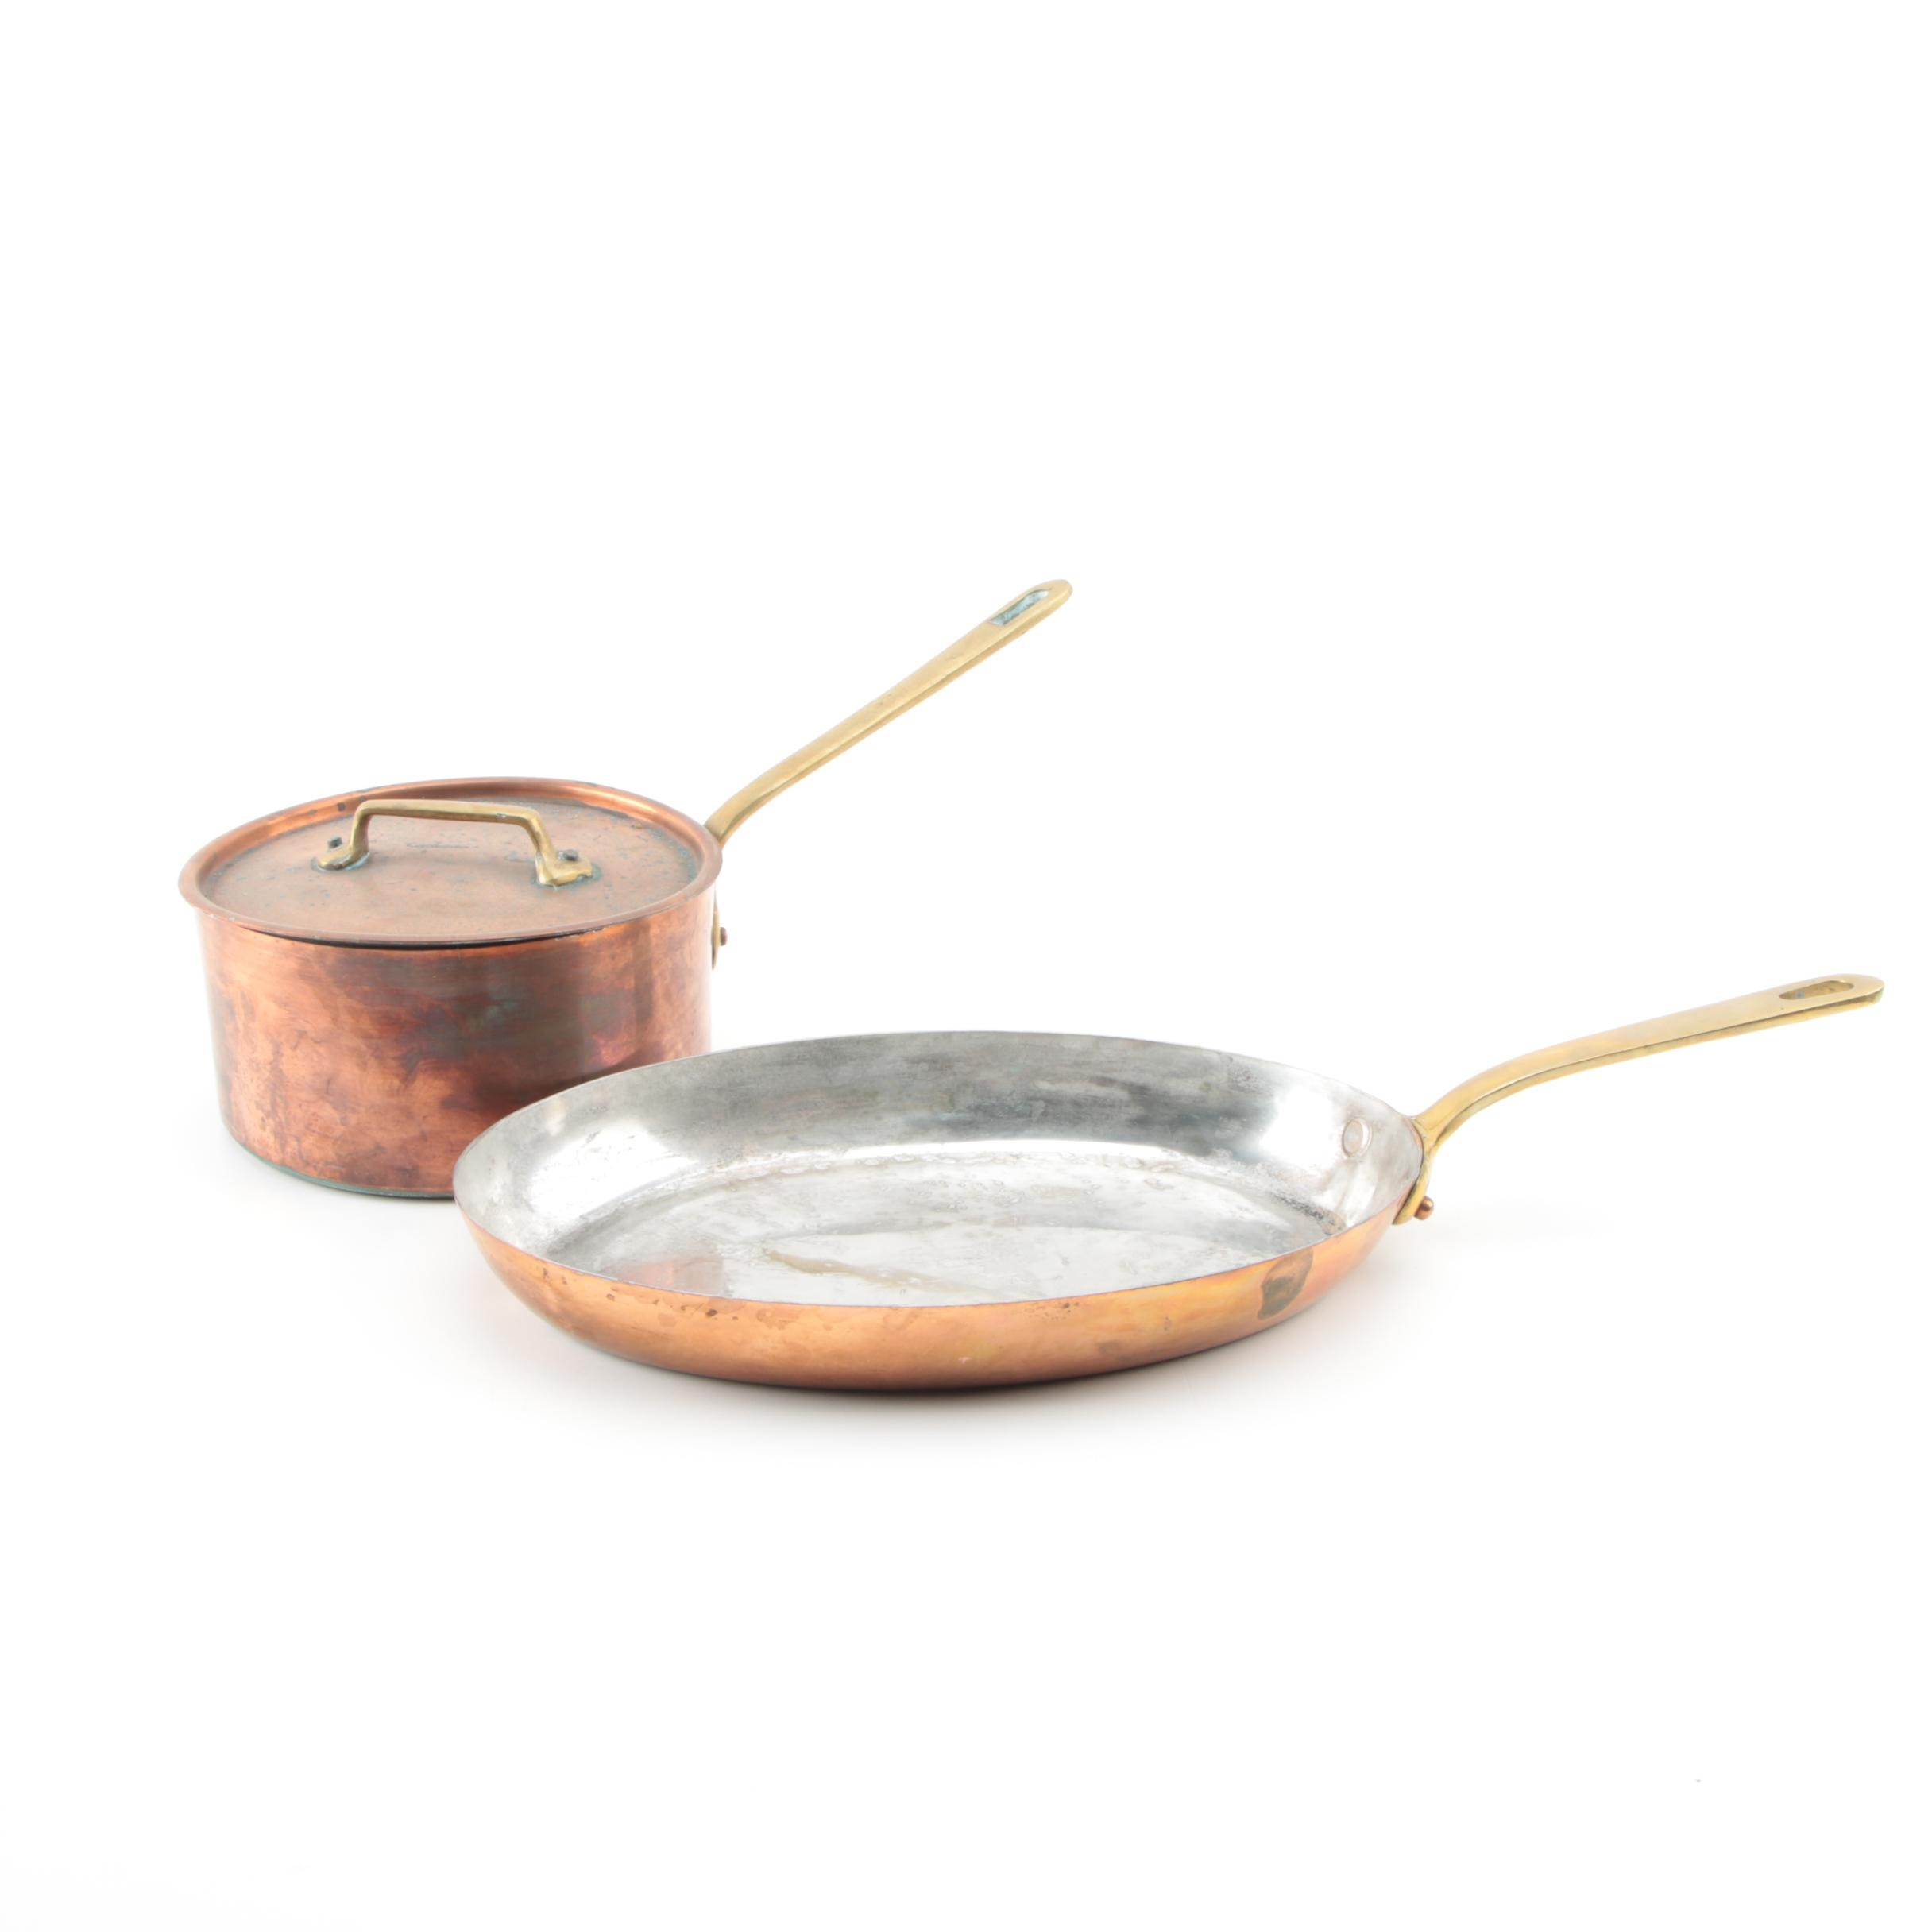 Pairing of French Bazar Francais Copper and Brass Cooking Pans